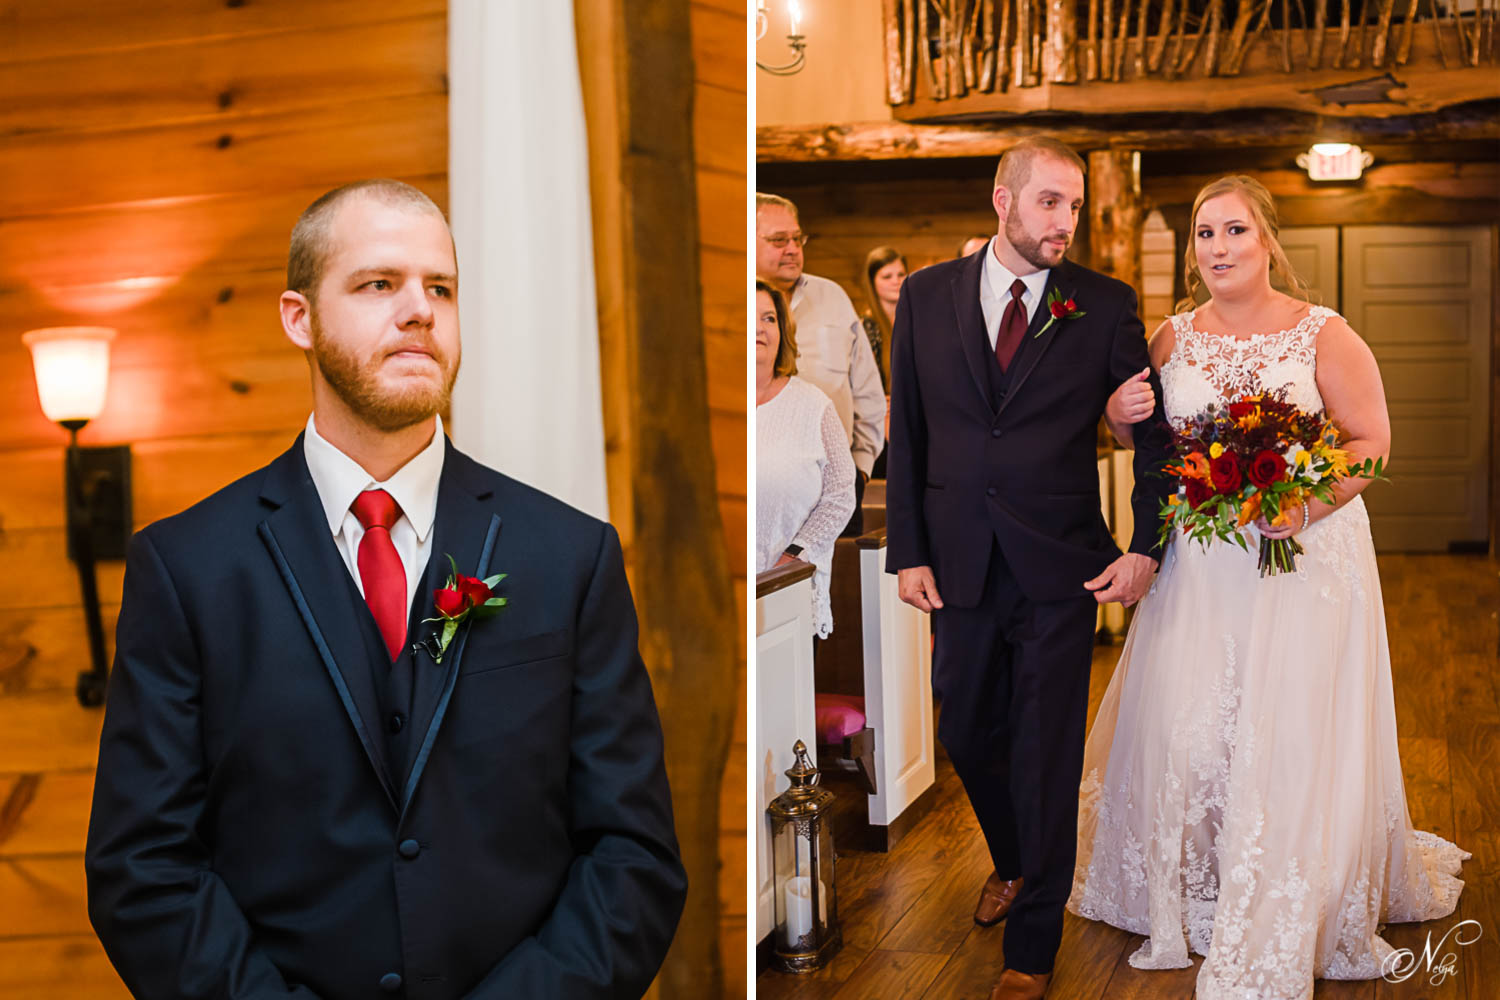 groom seeing his bride walk into the chapel with her dad. And dad and bride walking into the chapel.